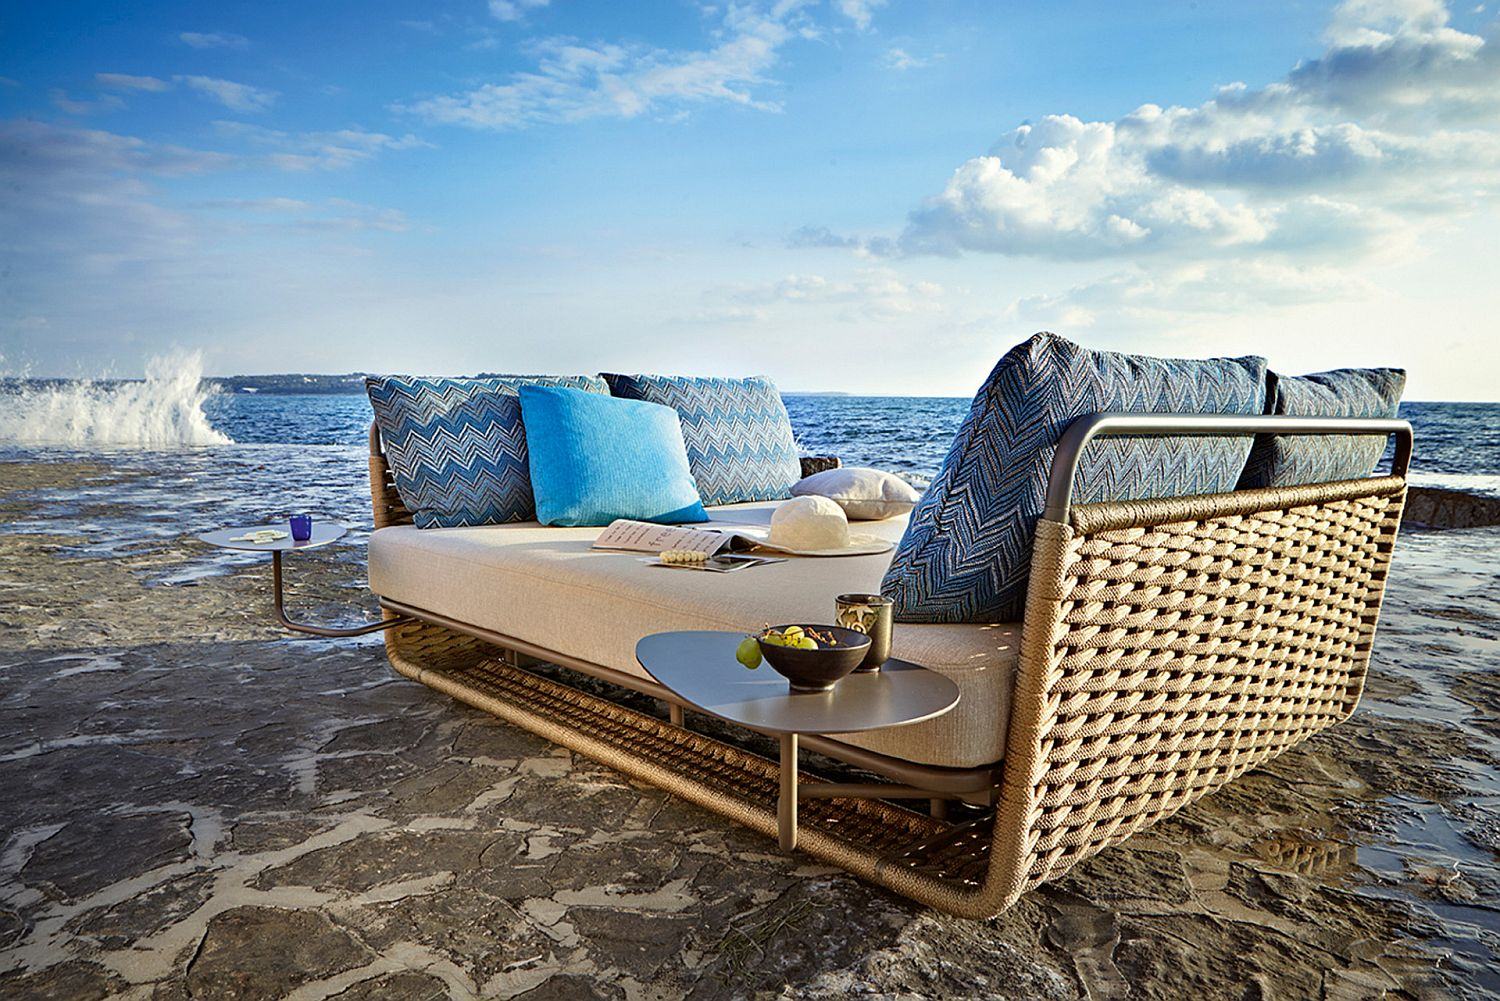 Sunbed with a cozy and elegant deisgn